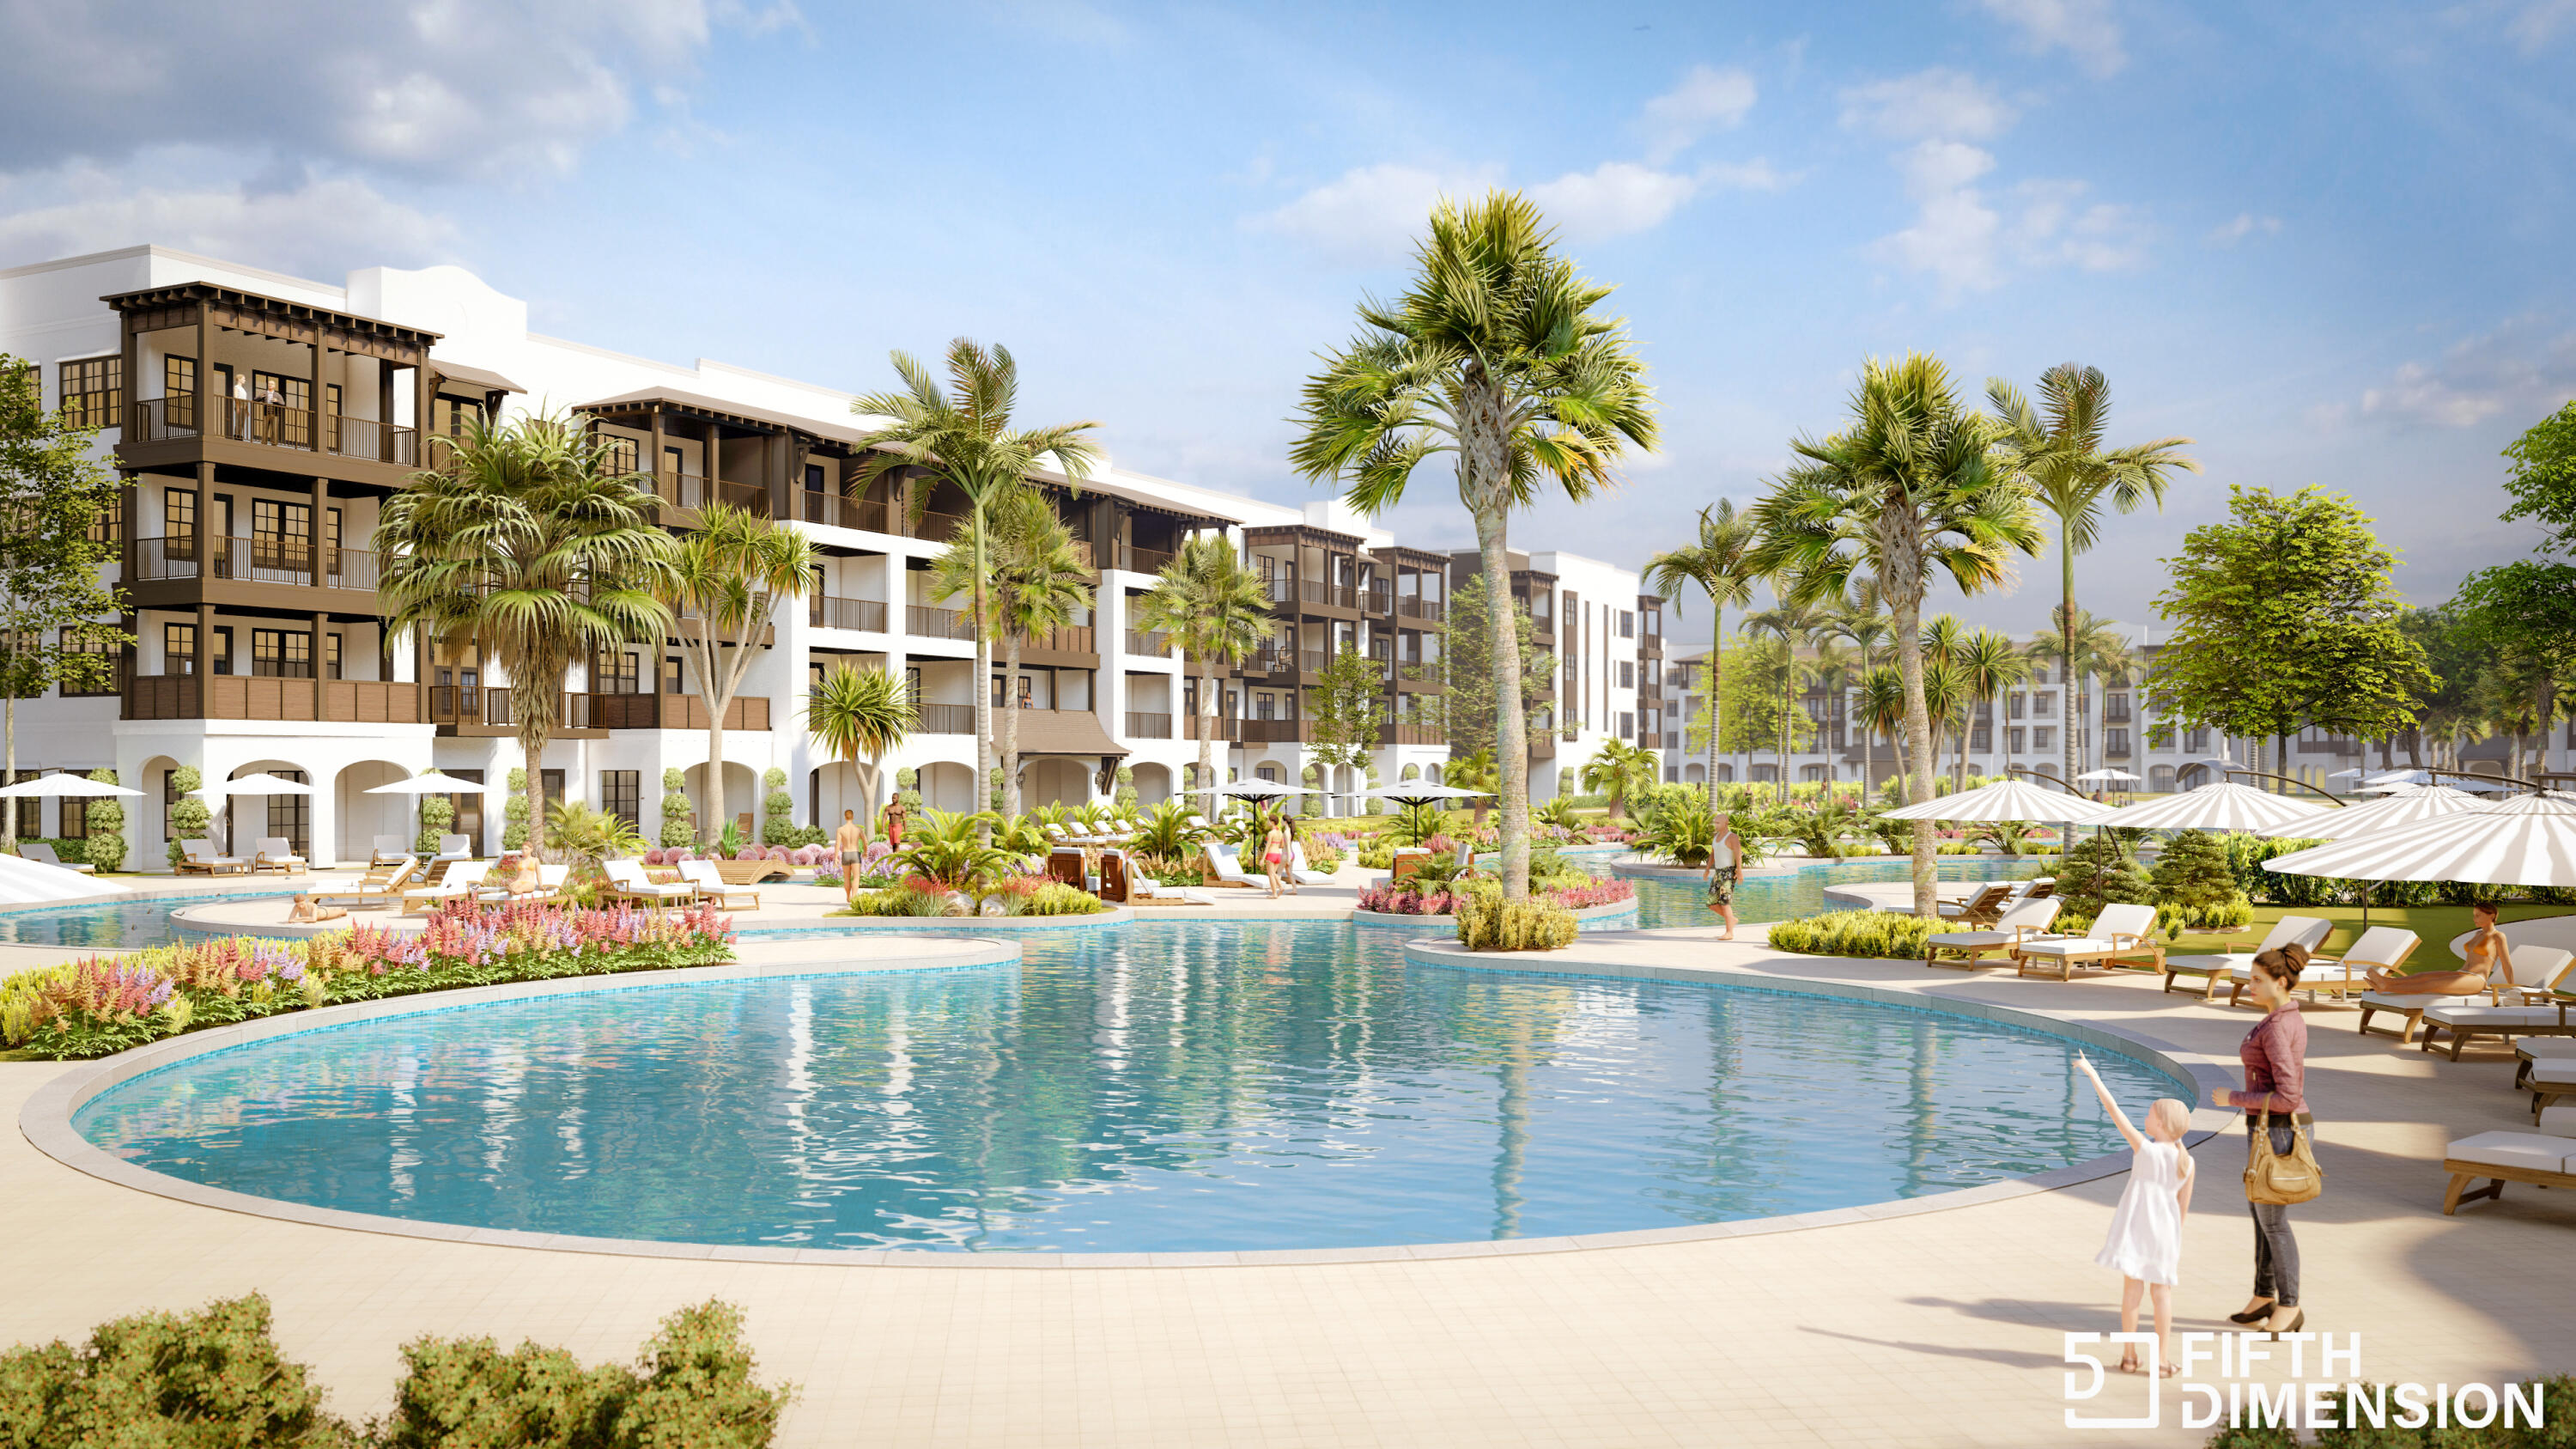 Introducing The Grove at Seascape, a gorgeous Mediterranean style resort that will be located within the popular Seascape Golf, Beach, & Tennis Resort in Miramar Beach.  Now is your opportunity to purchase these luxury one, two, three, and four bedroom pre-construction condominiums during the release of the first two buildings, the Holly and the Juniper.   The mid-rise four story condominiums will overlook the Aquatic Garden amenities featuring multiple pools including a relaxing lazy river, zero entry pool, and much more.  Order your seafood lunch and refreshing beverages with poolside delivery right to your lounge chair.